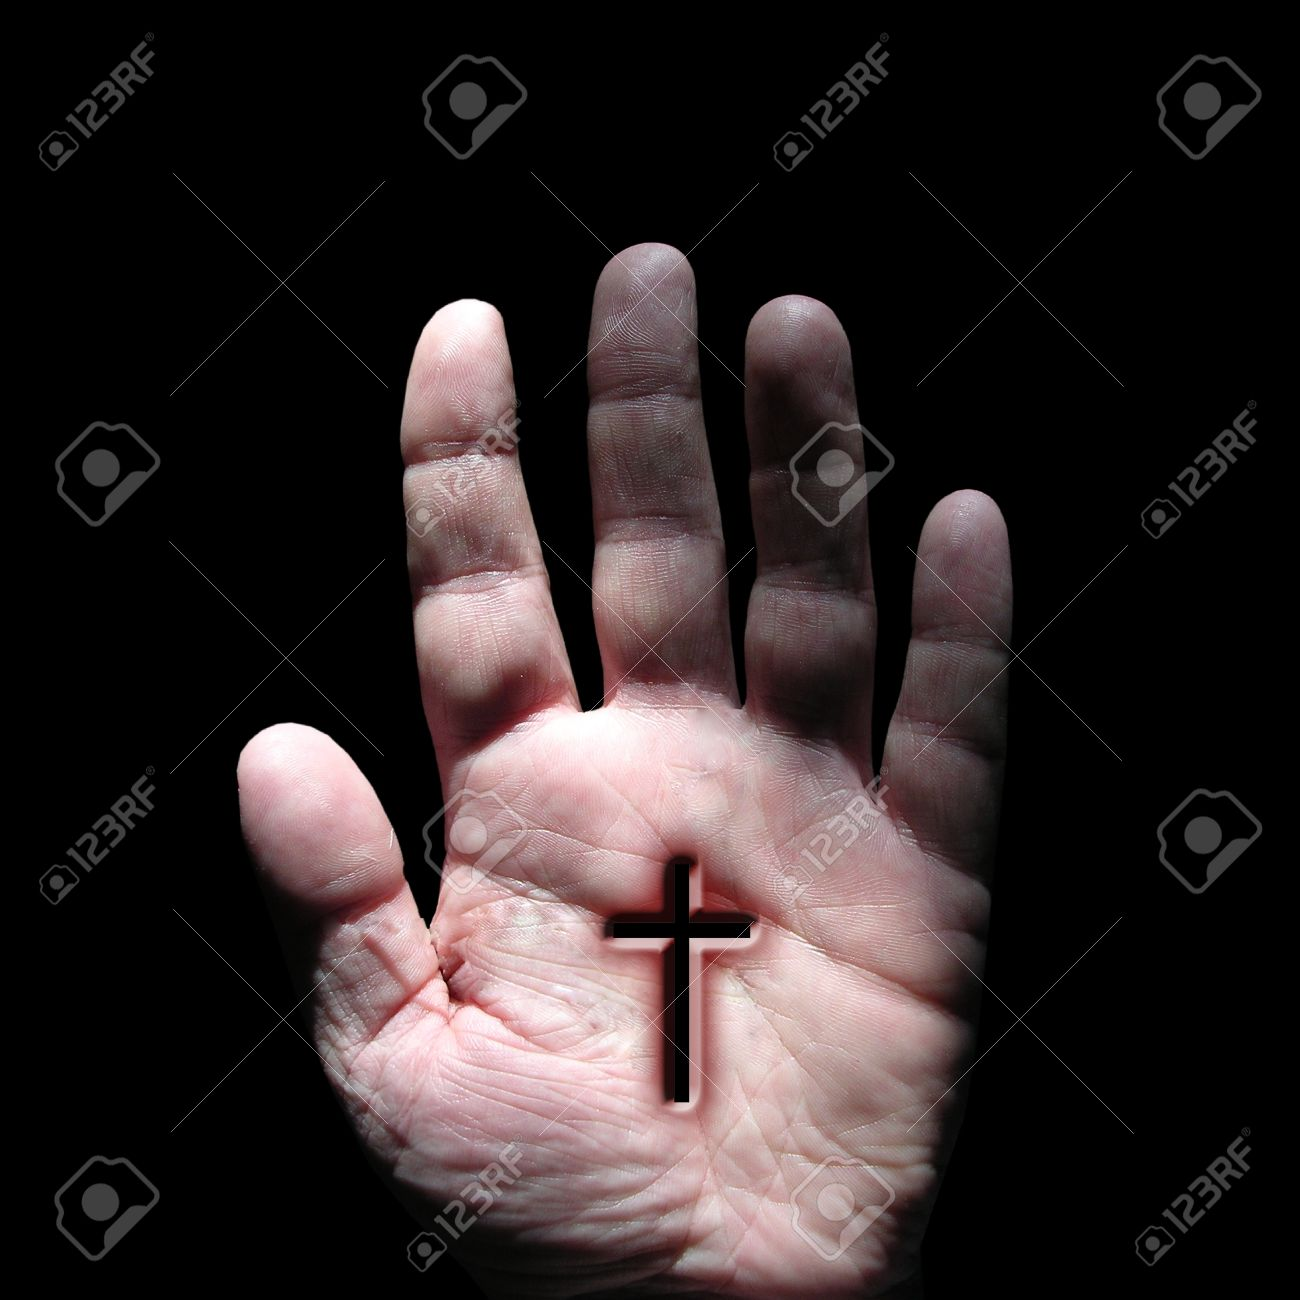 cross symbol at hand stock photo picture and royalty free image